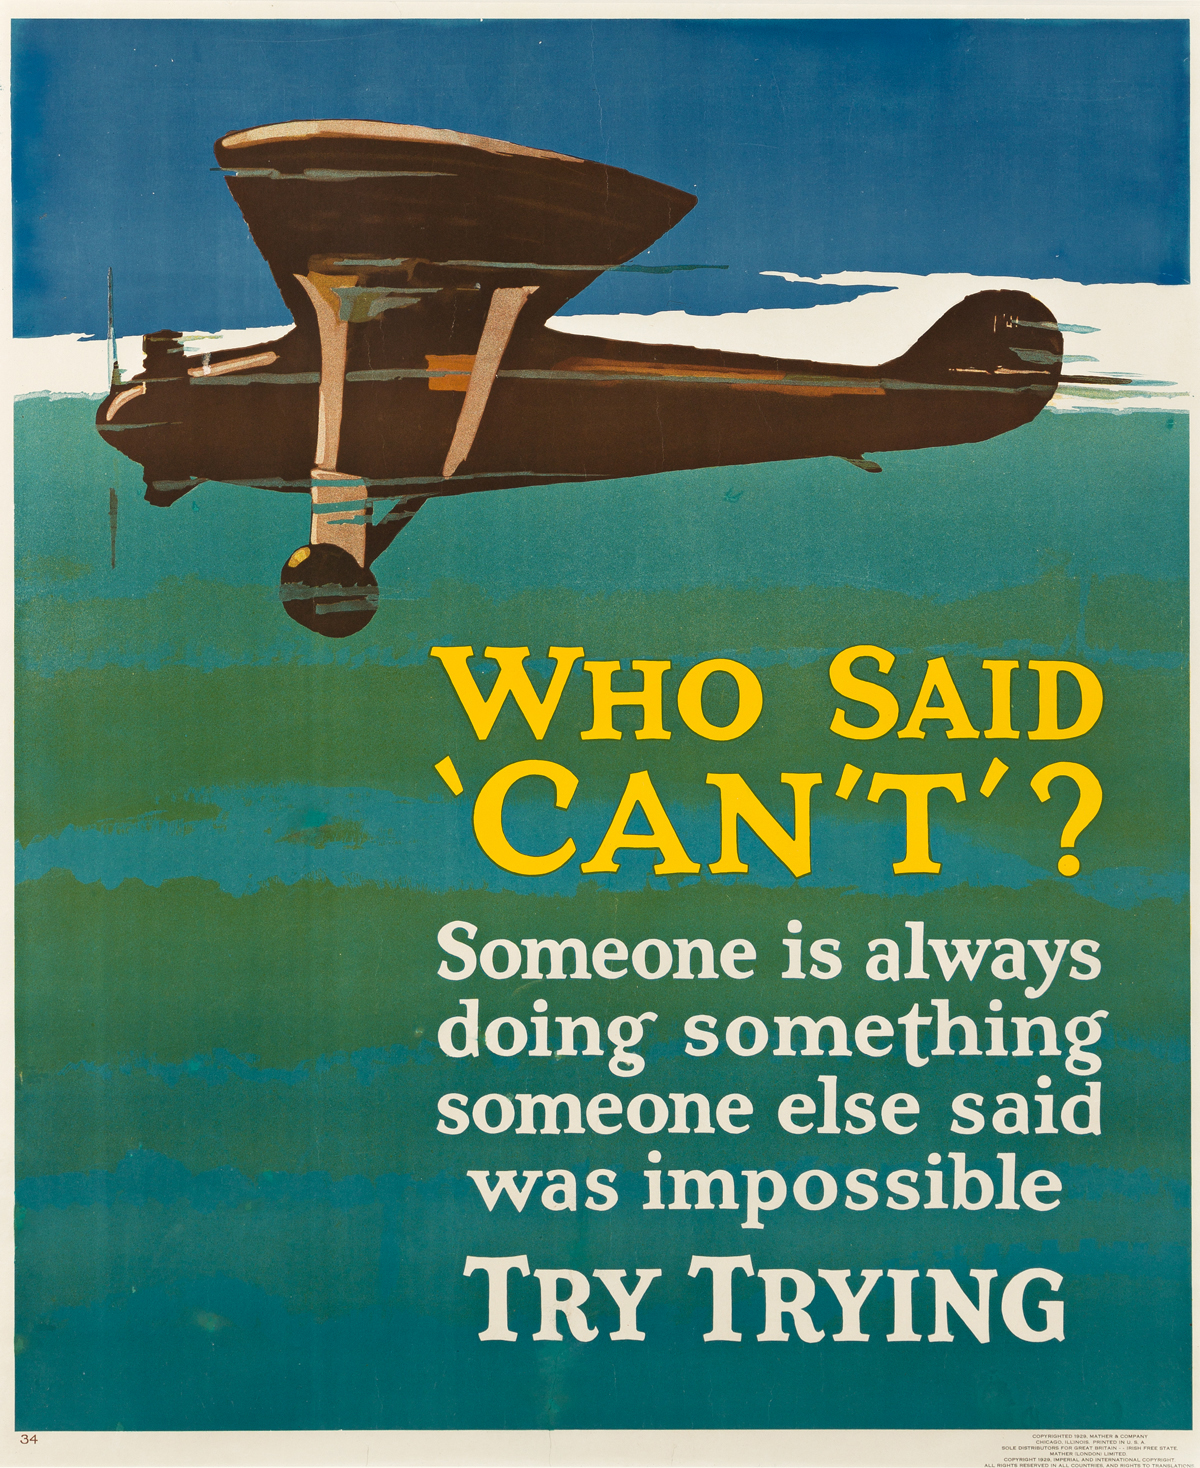 DESIGNER UNKNOWN.  WHO SAID CANT? / TRY TRYING. 1929. 43¾x36 inches, 111x91½ cm. Mather & Company, Chicago.